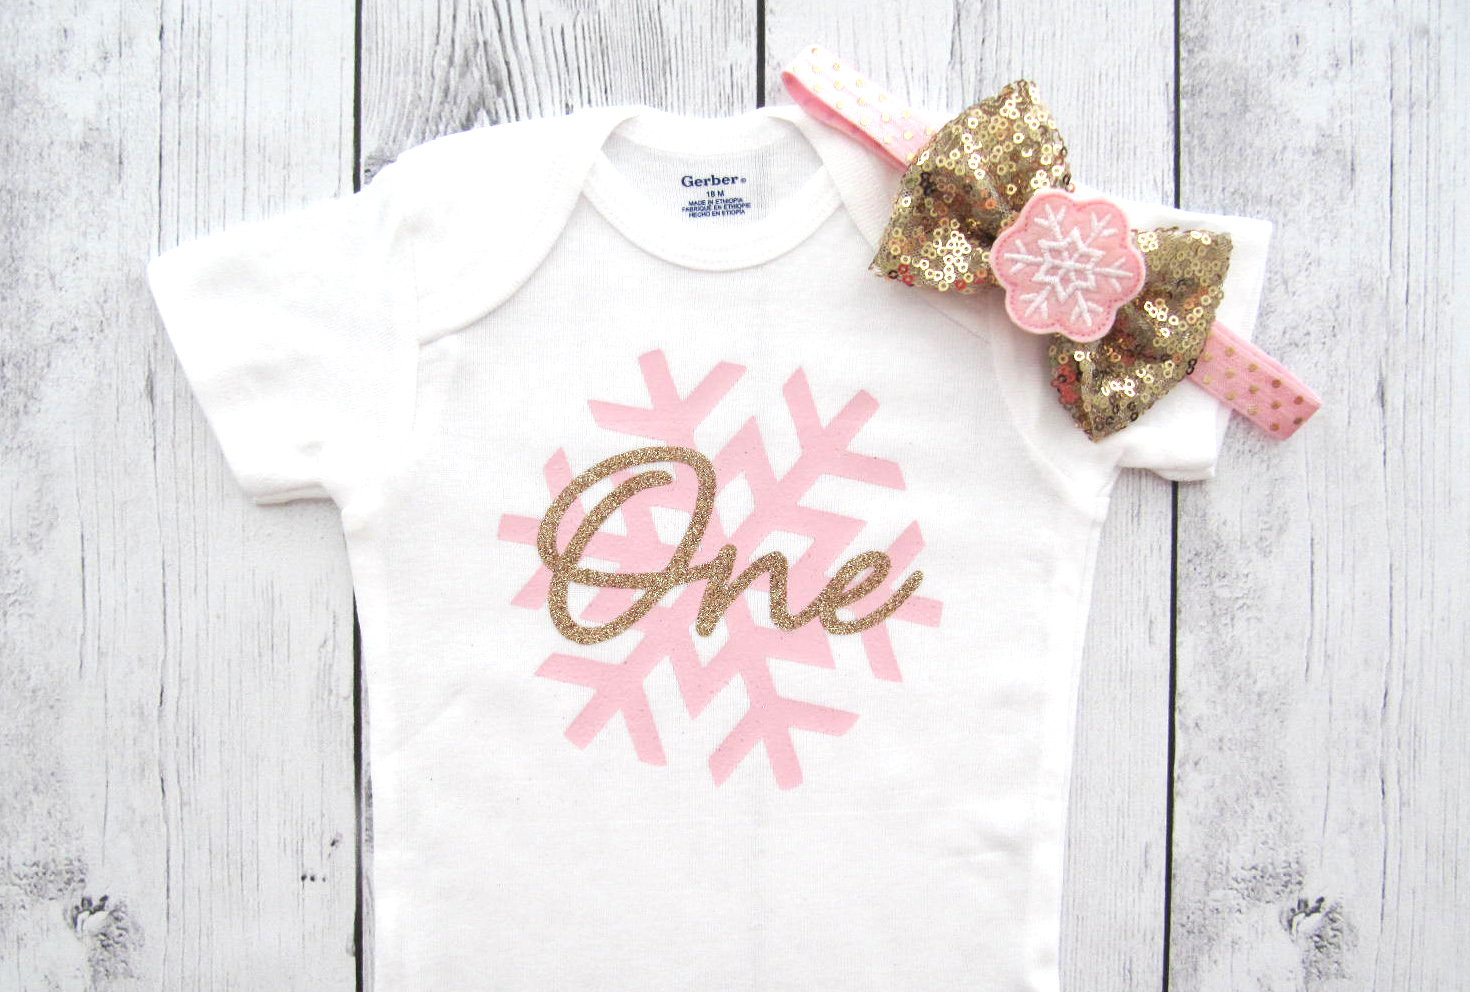 Snowflake First Birthday Onesie - winter onederland shirt, baby girl birthday, snowflake birthday, winter birthday, pink gold